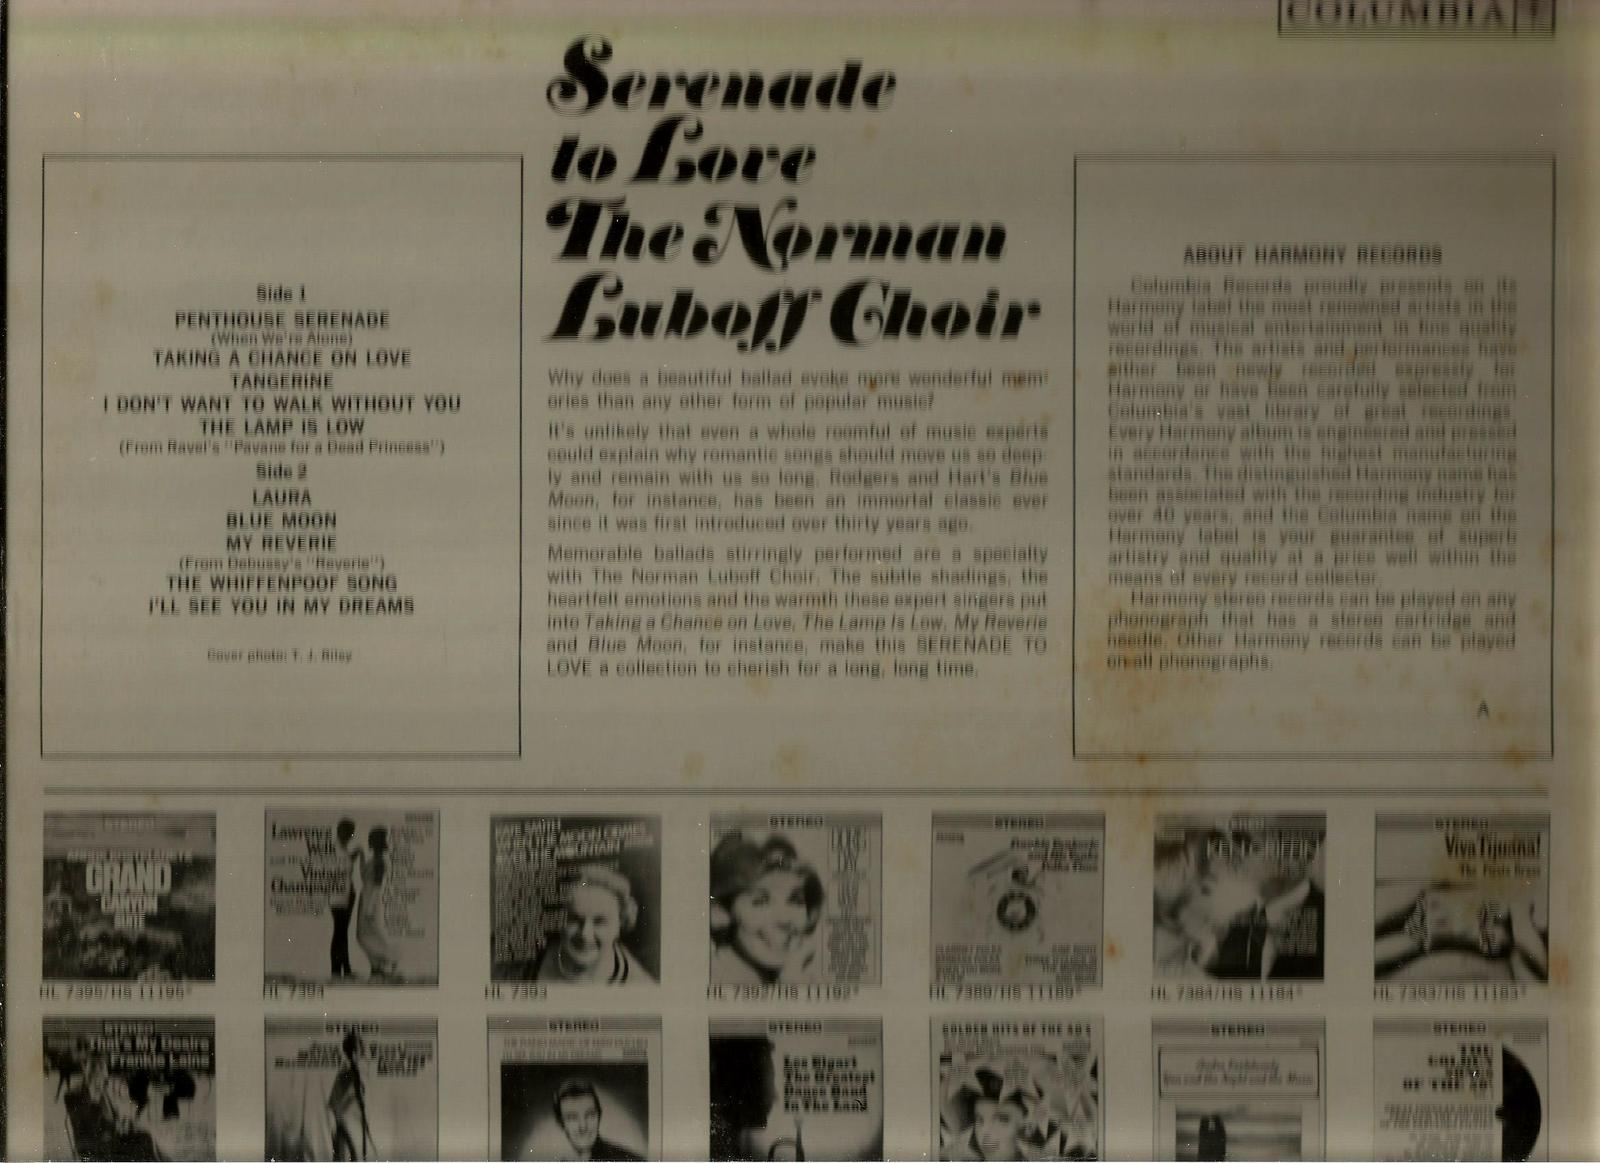 THE  NORMAN  LUBOFF  CHOIR  * SERENADE TO LOVE *  LP  STEREO